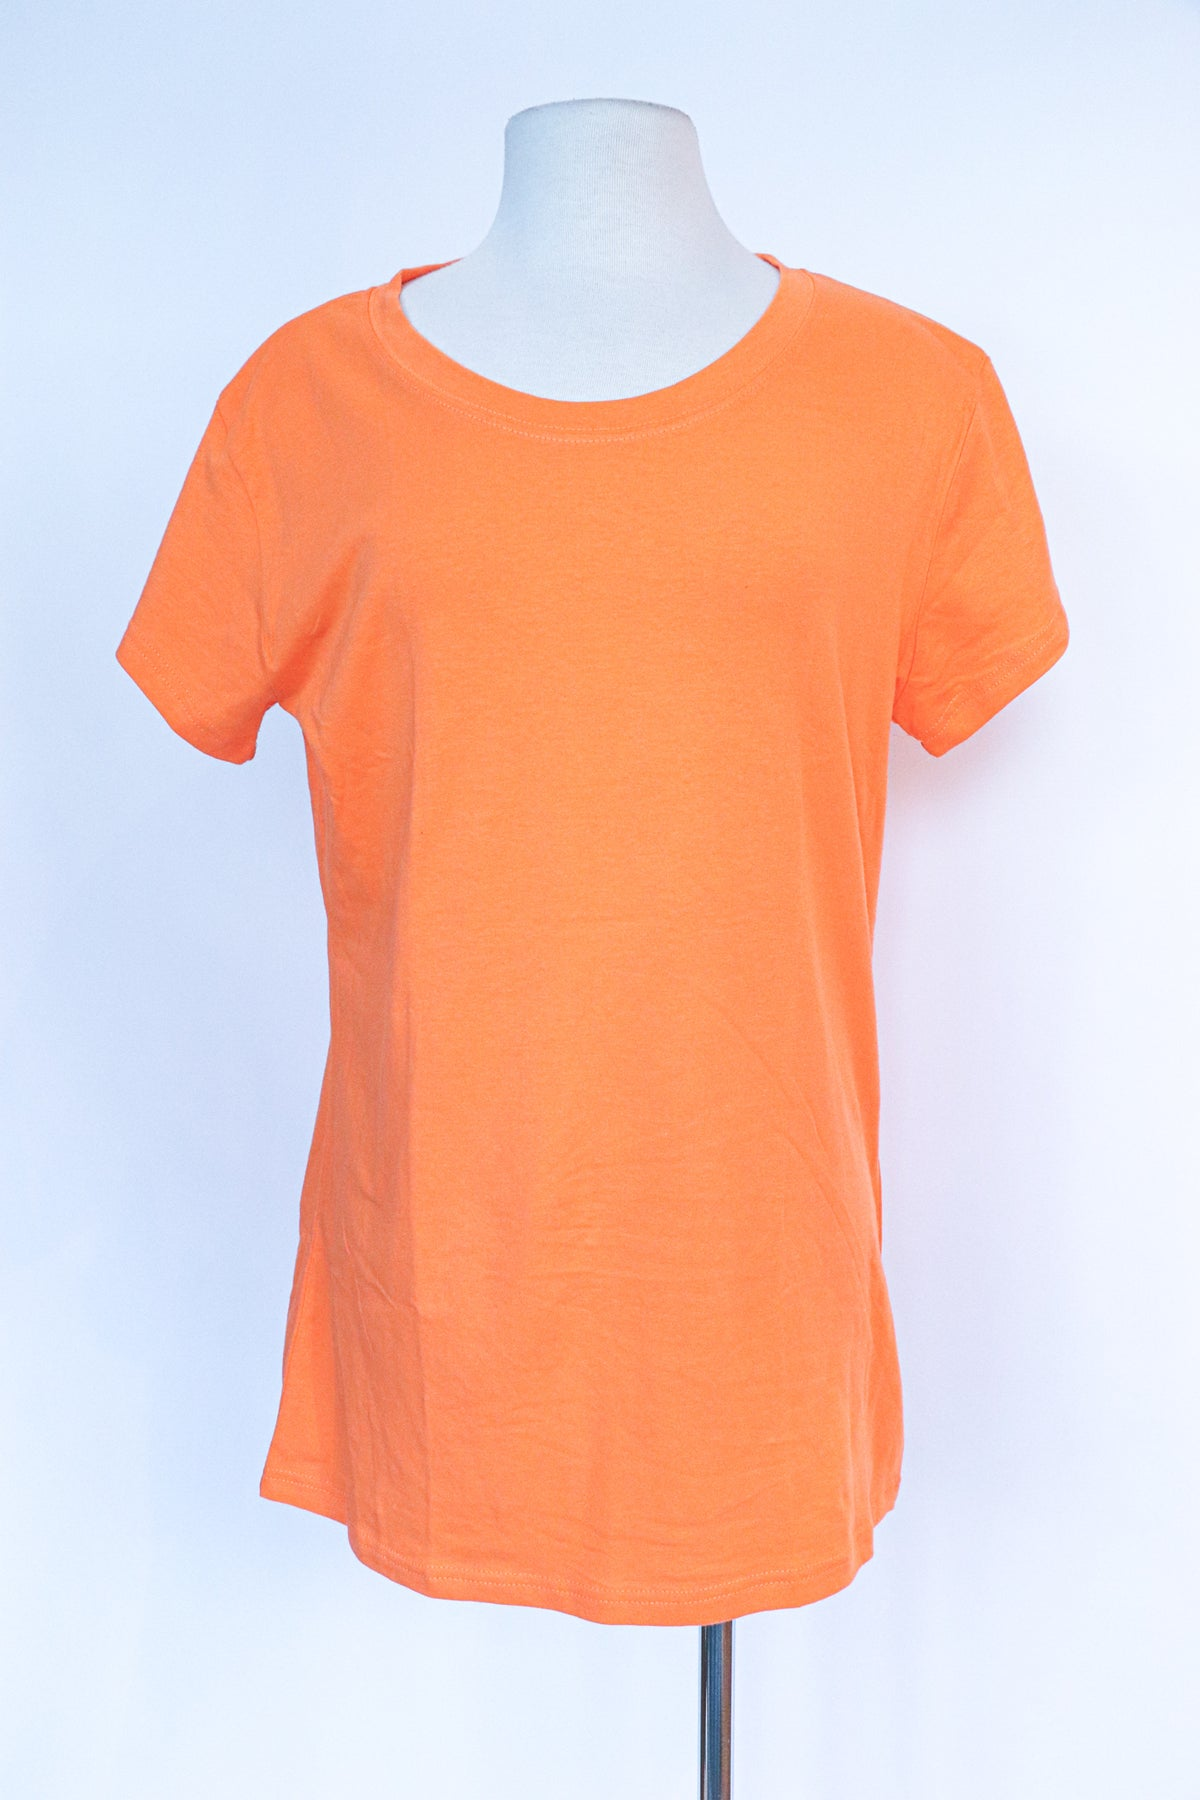 Wet Seal - Basic Tee - Orange Scoop Neck